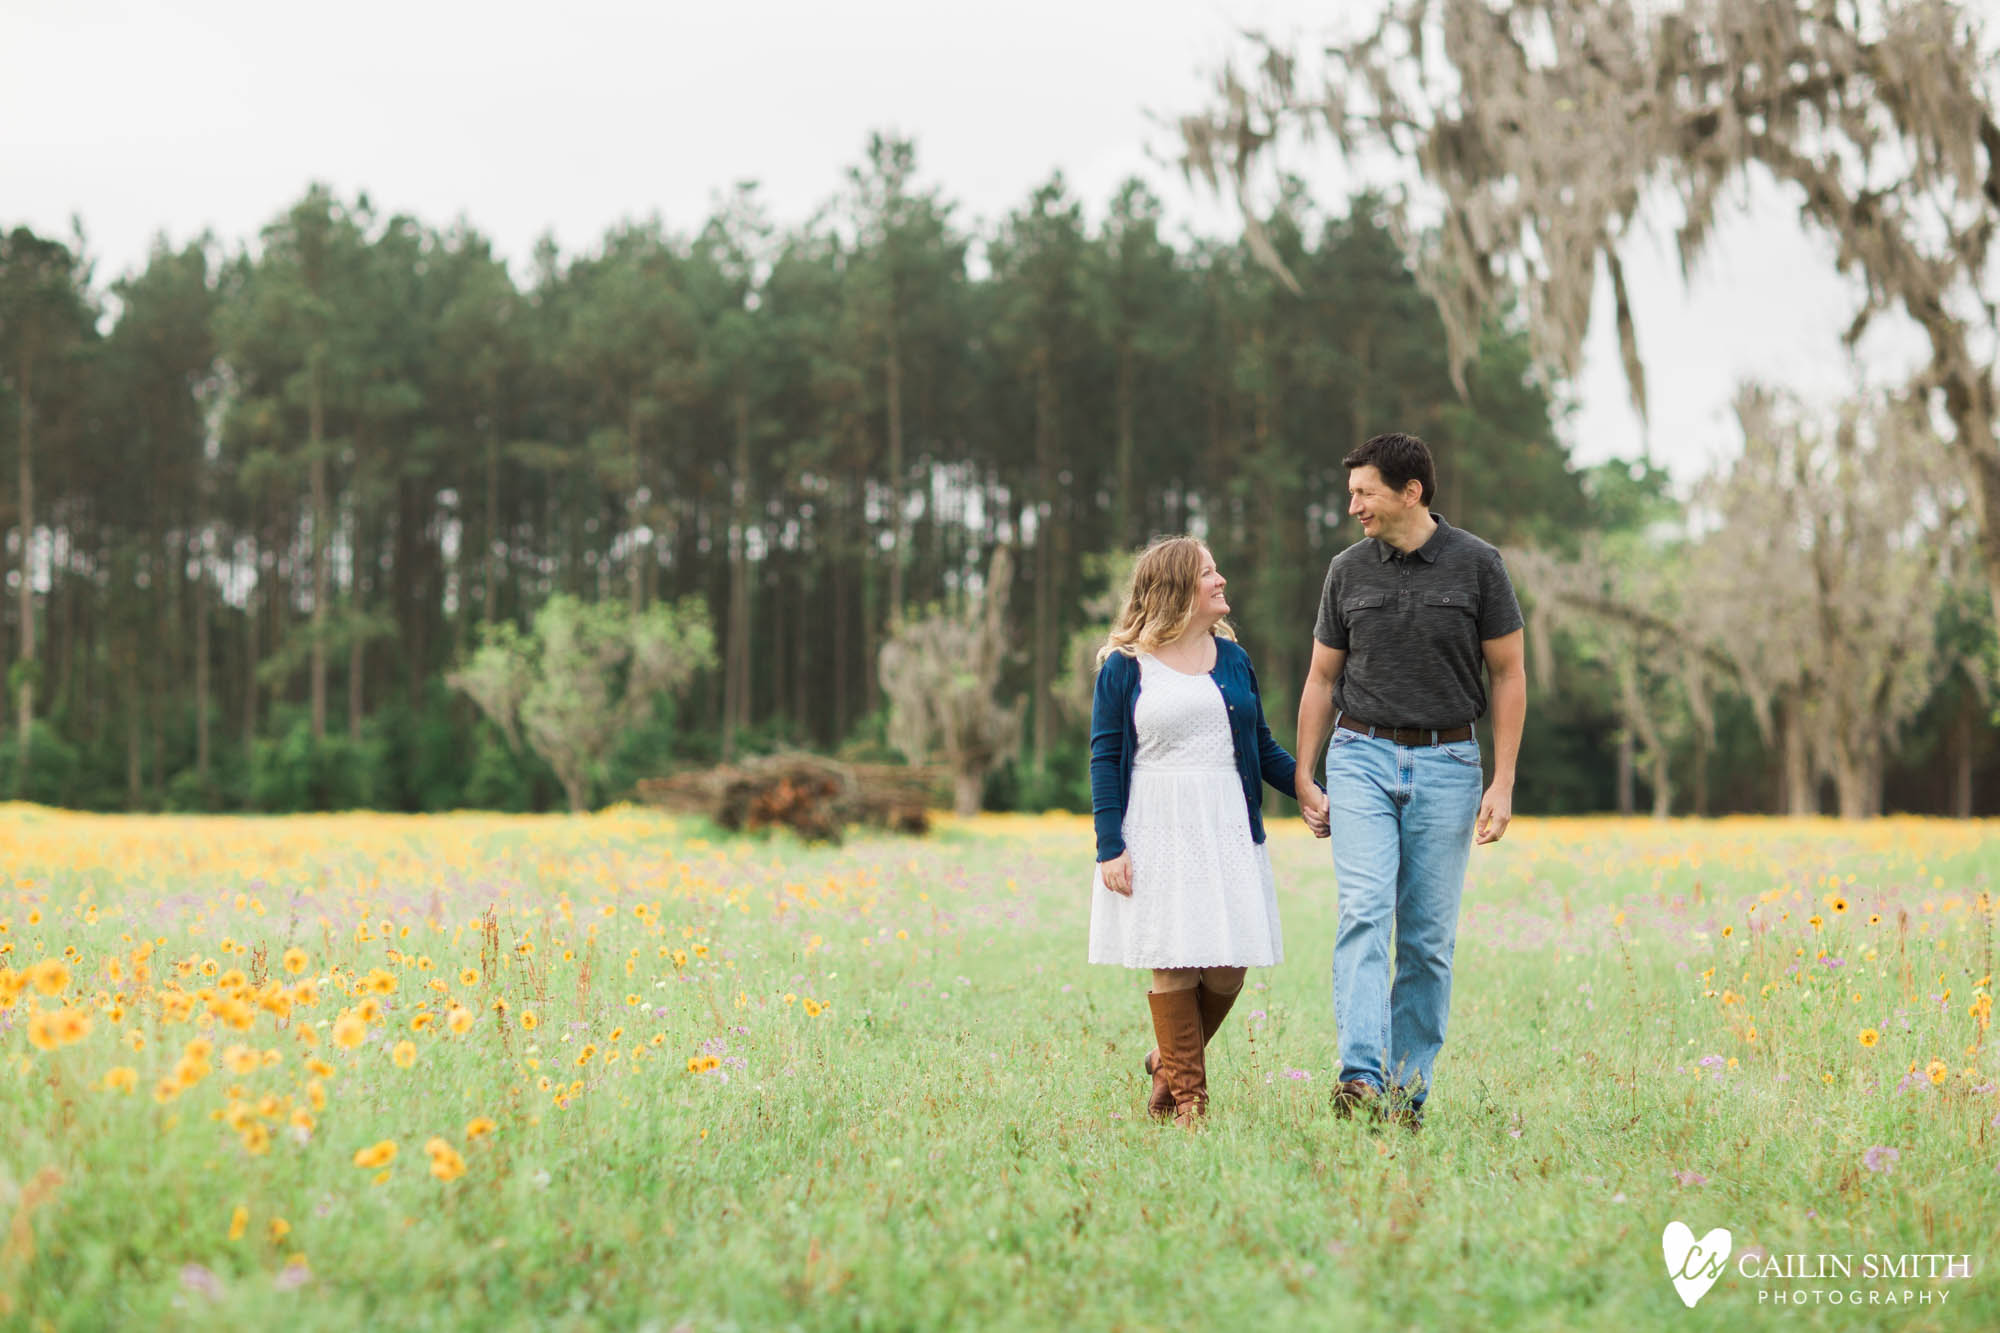 Christie_Nathan_Flower_Field_engagement_Photography_006.jpg